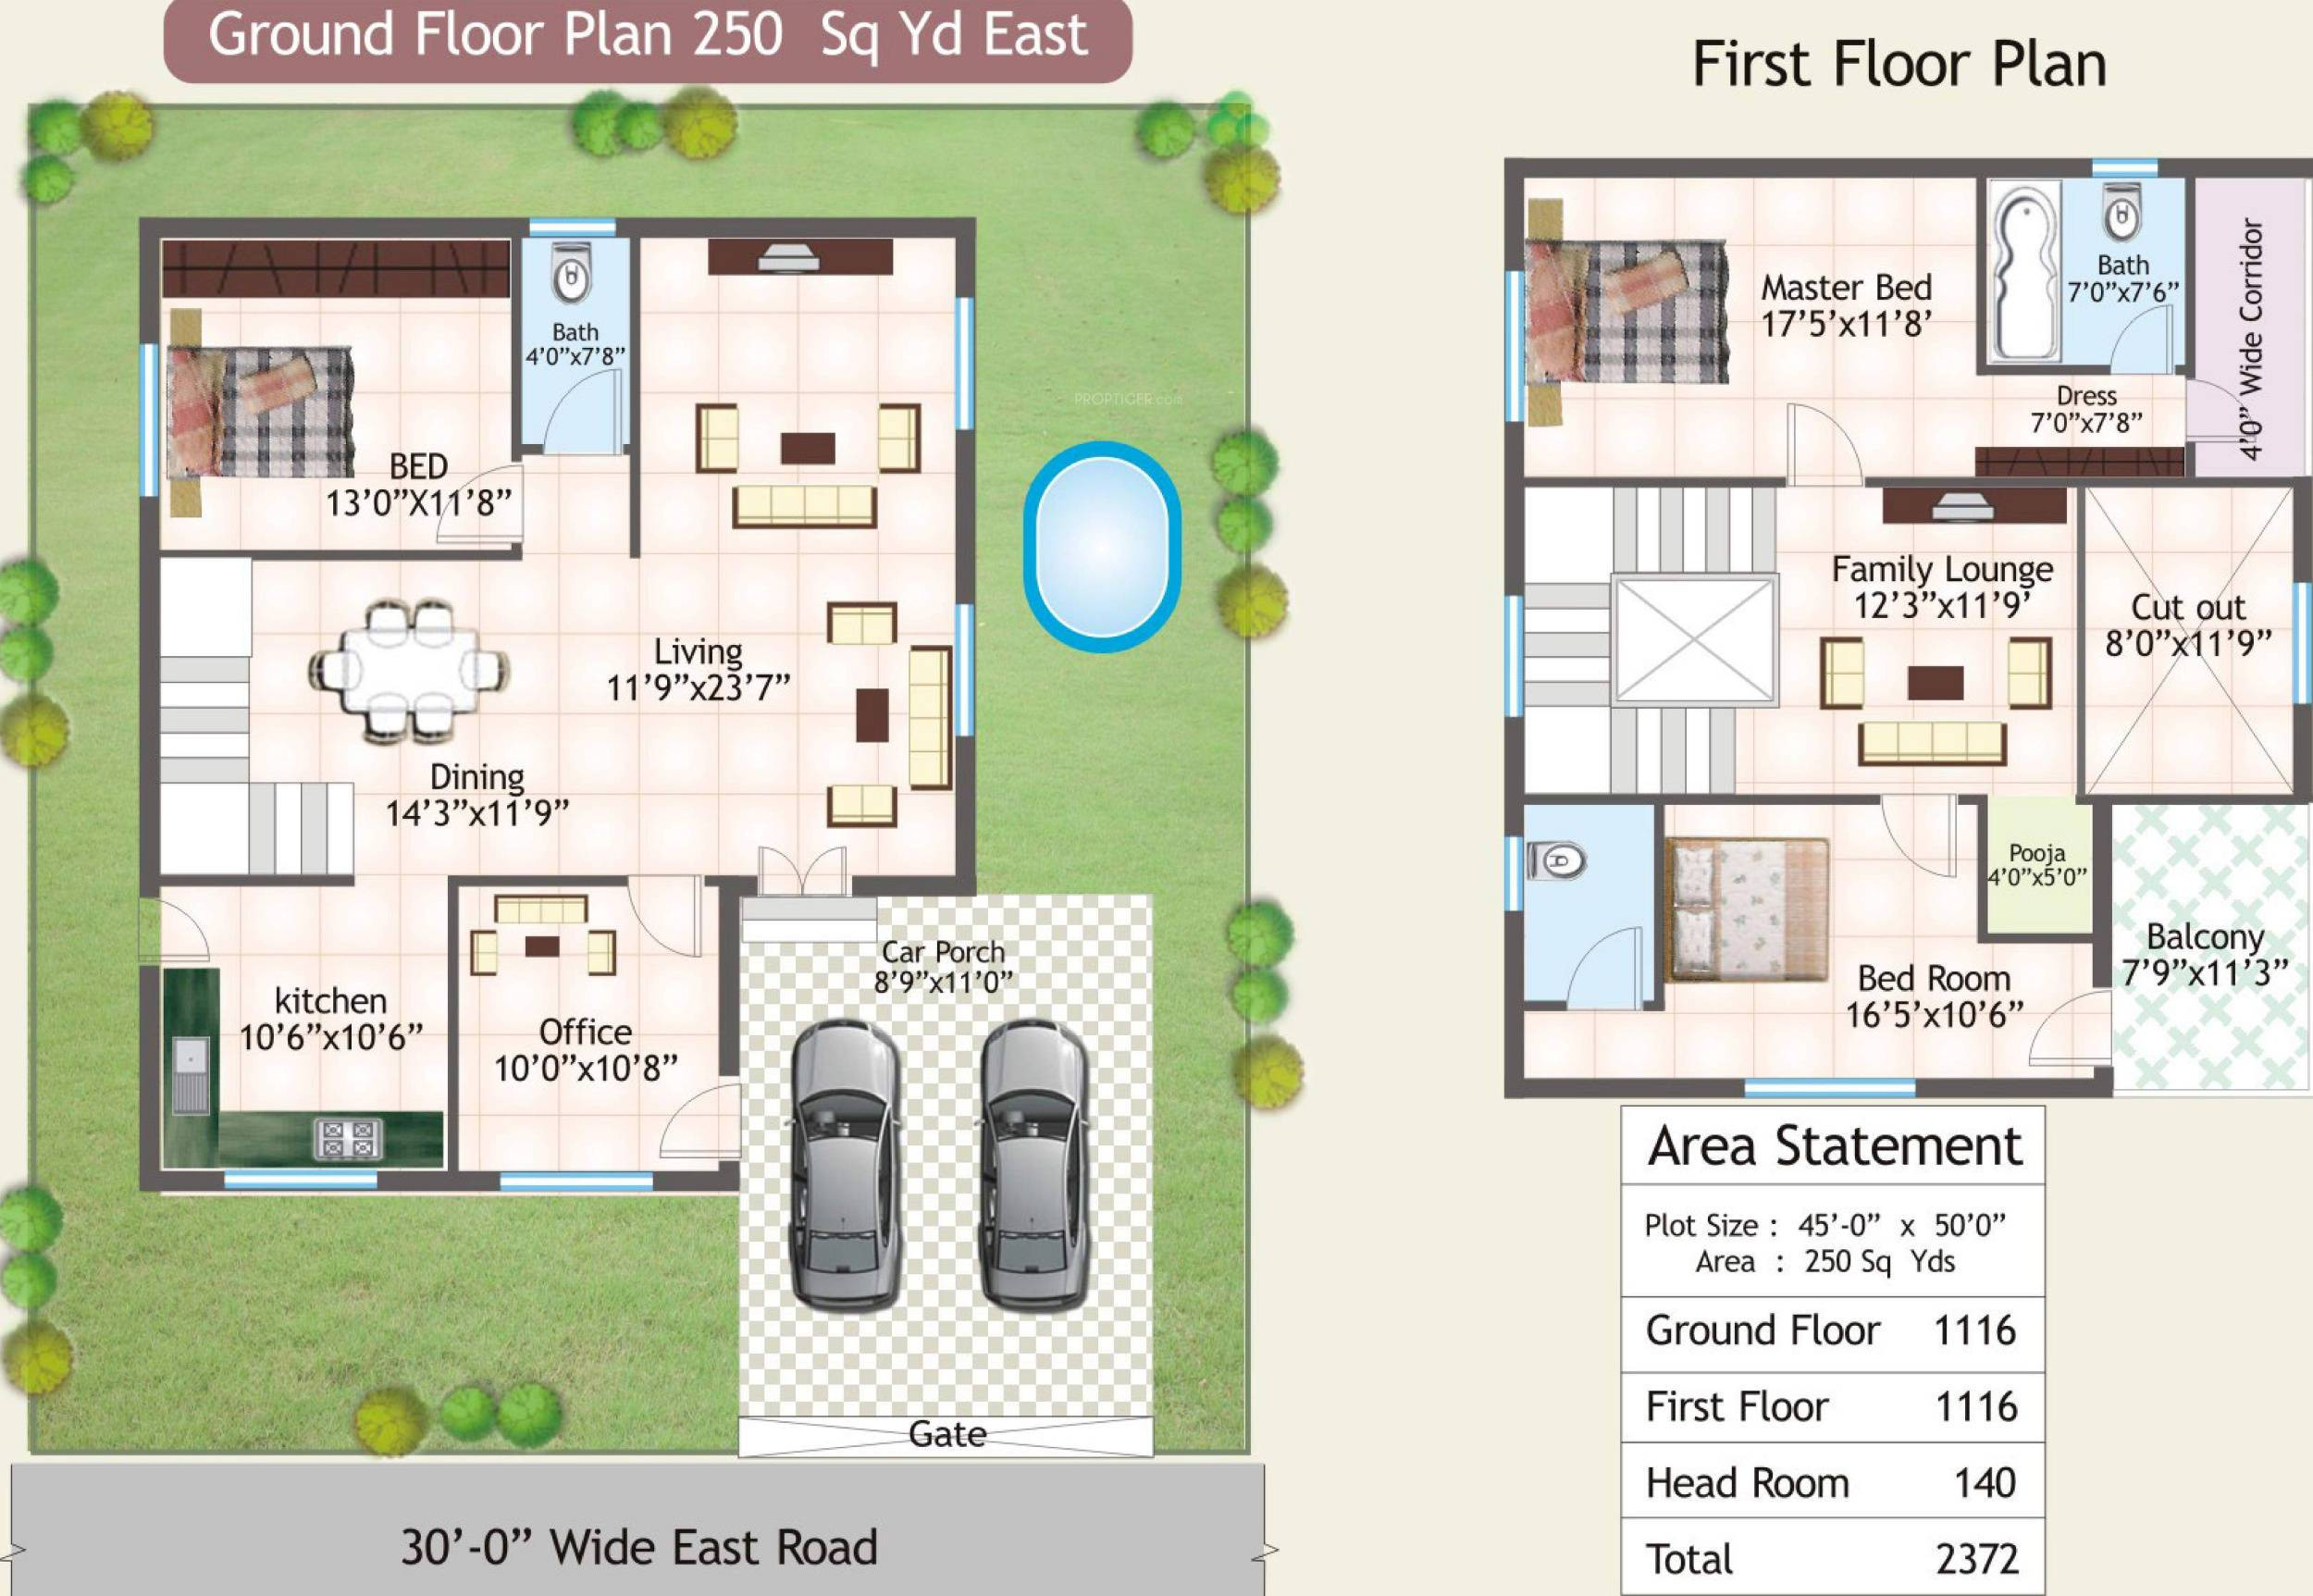 SRK Green Park floorplan 2250sqft east facing